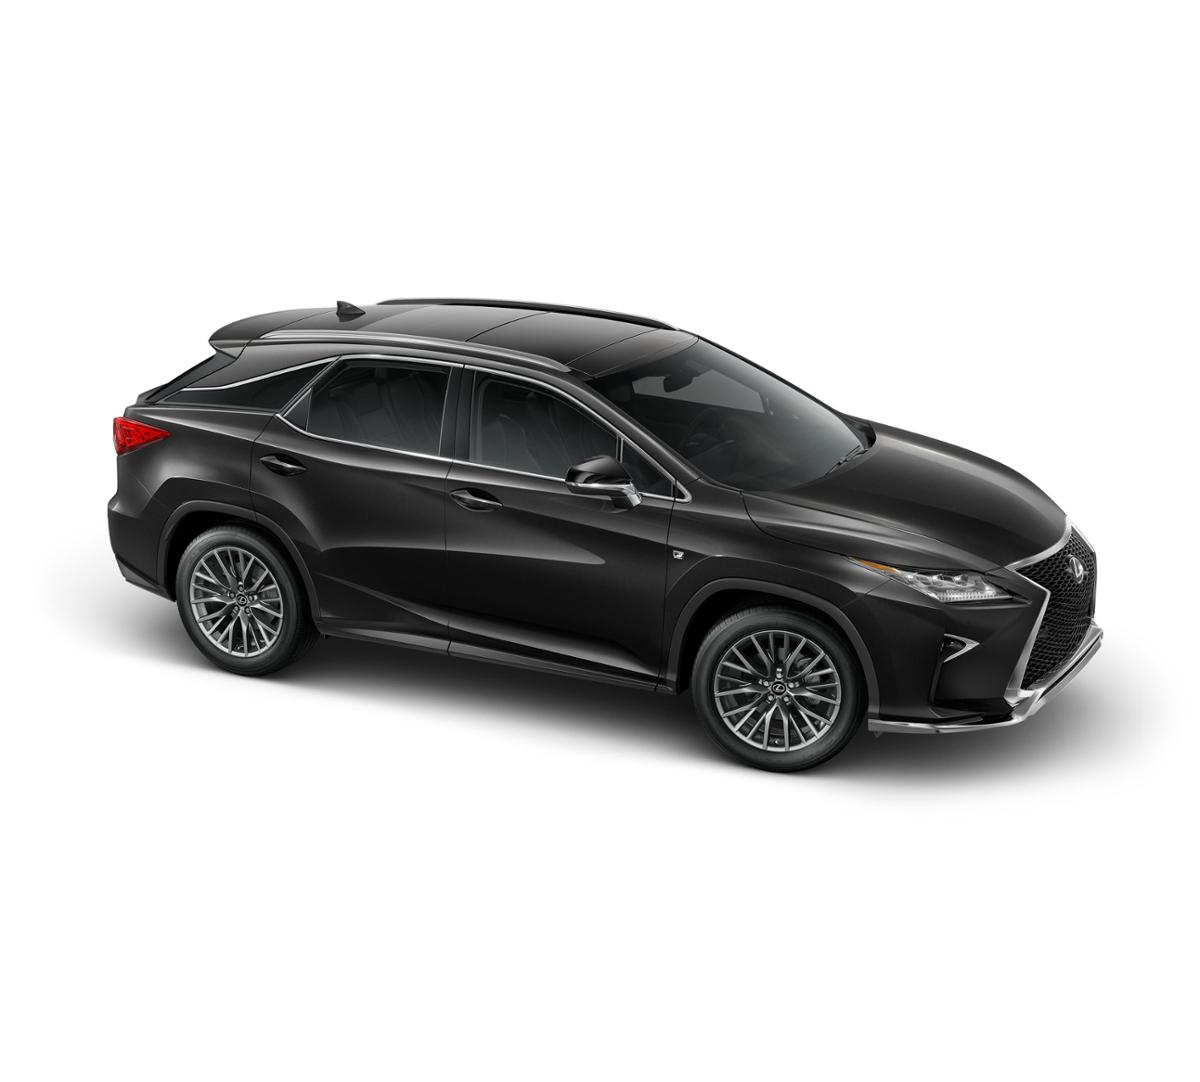 2018 lexus rx 350 for sale in pembroke pines 2t2bzmca9jc142361 lexus of pembroke pines. Black Bedroom Furniture Sets. Home Design Ideas